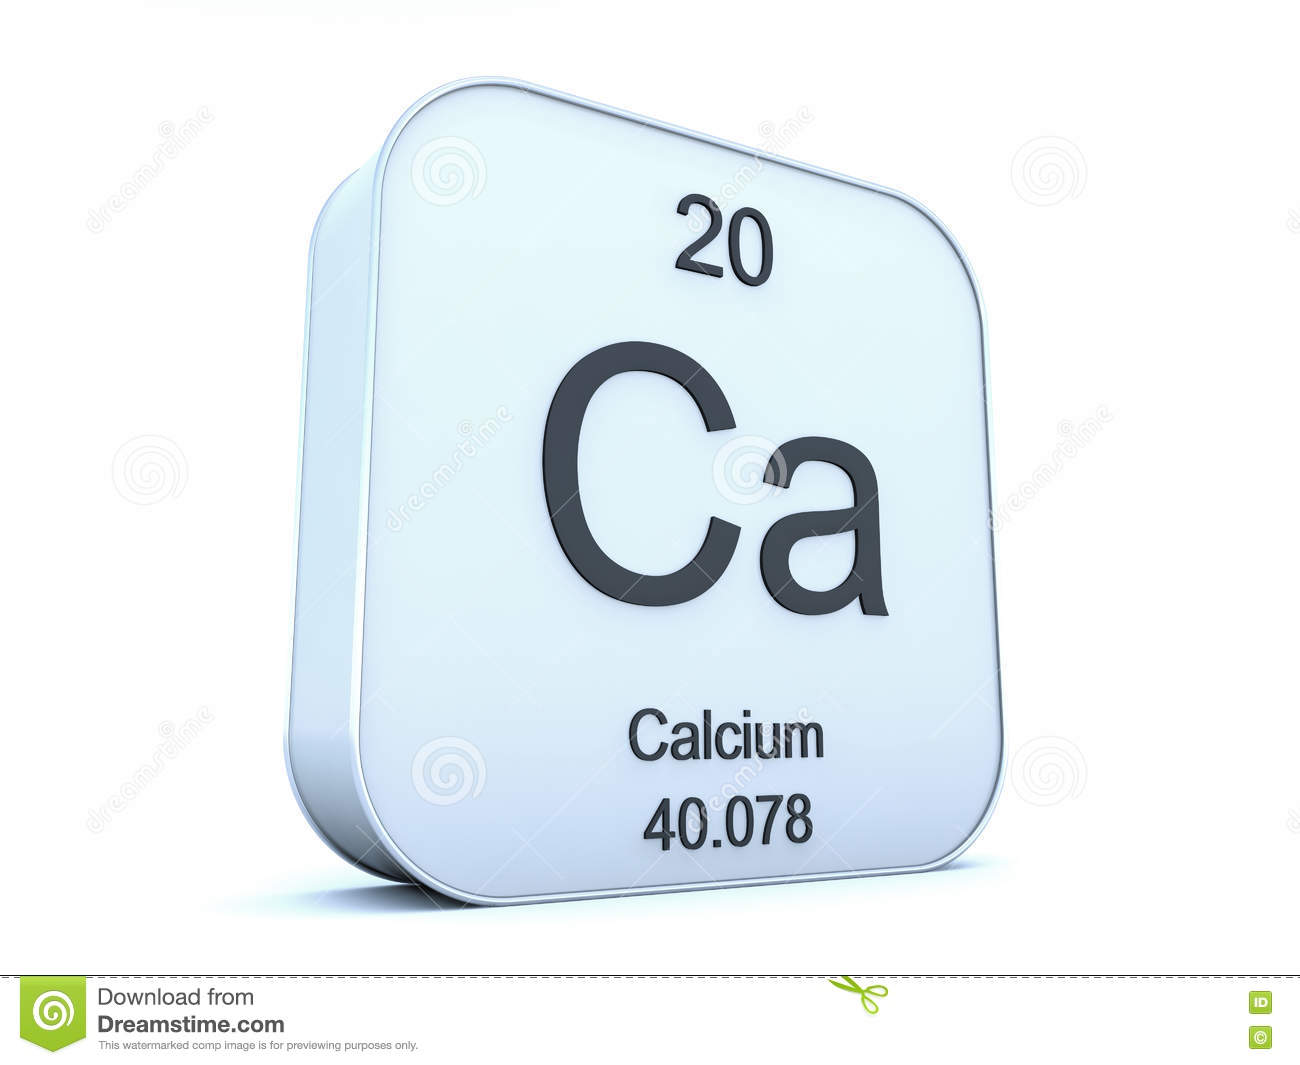 Calcium element stock illustration illustration of poster 20691496 calcium element symbol royalty free stock photos biocorpaavc